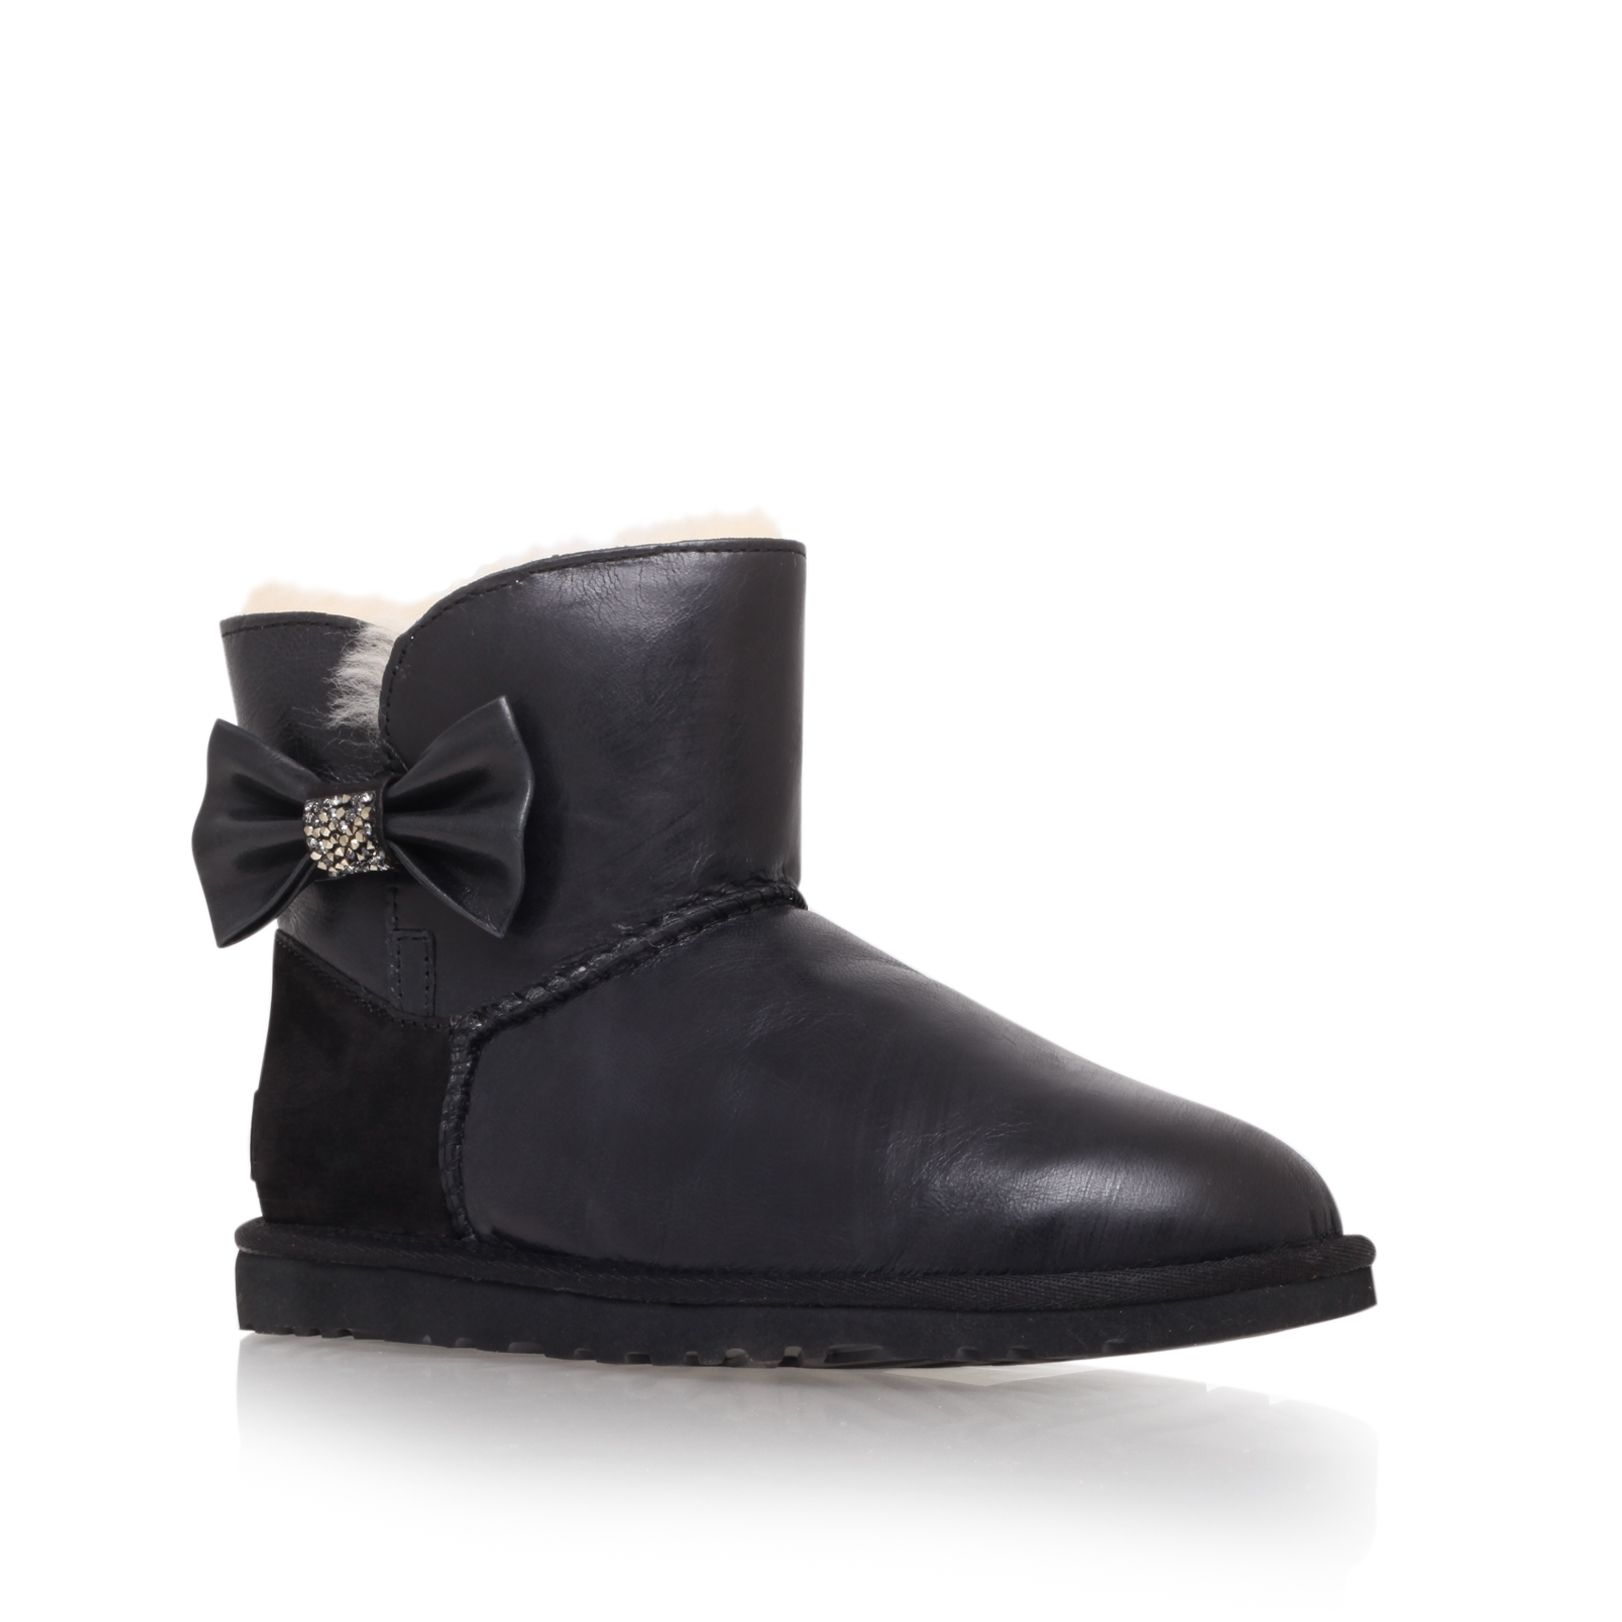 Mini bailey bow flat short ankle boots